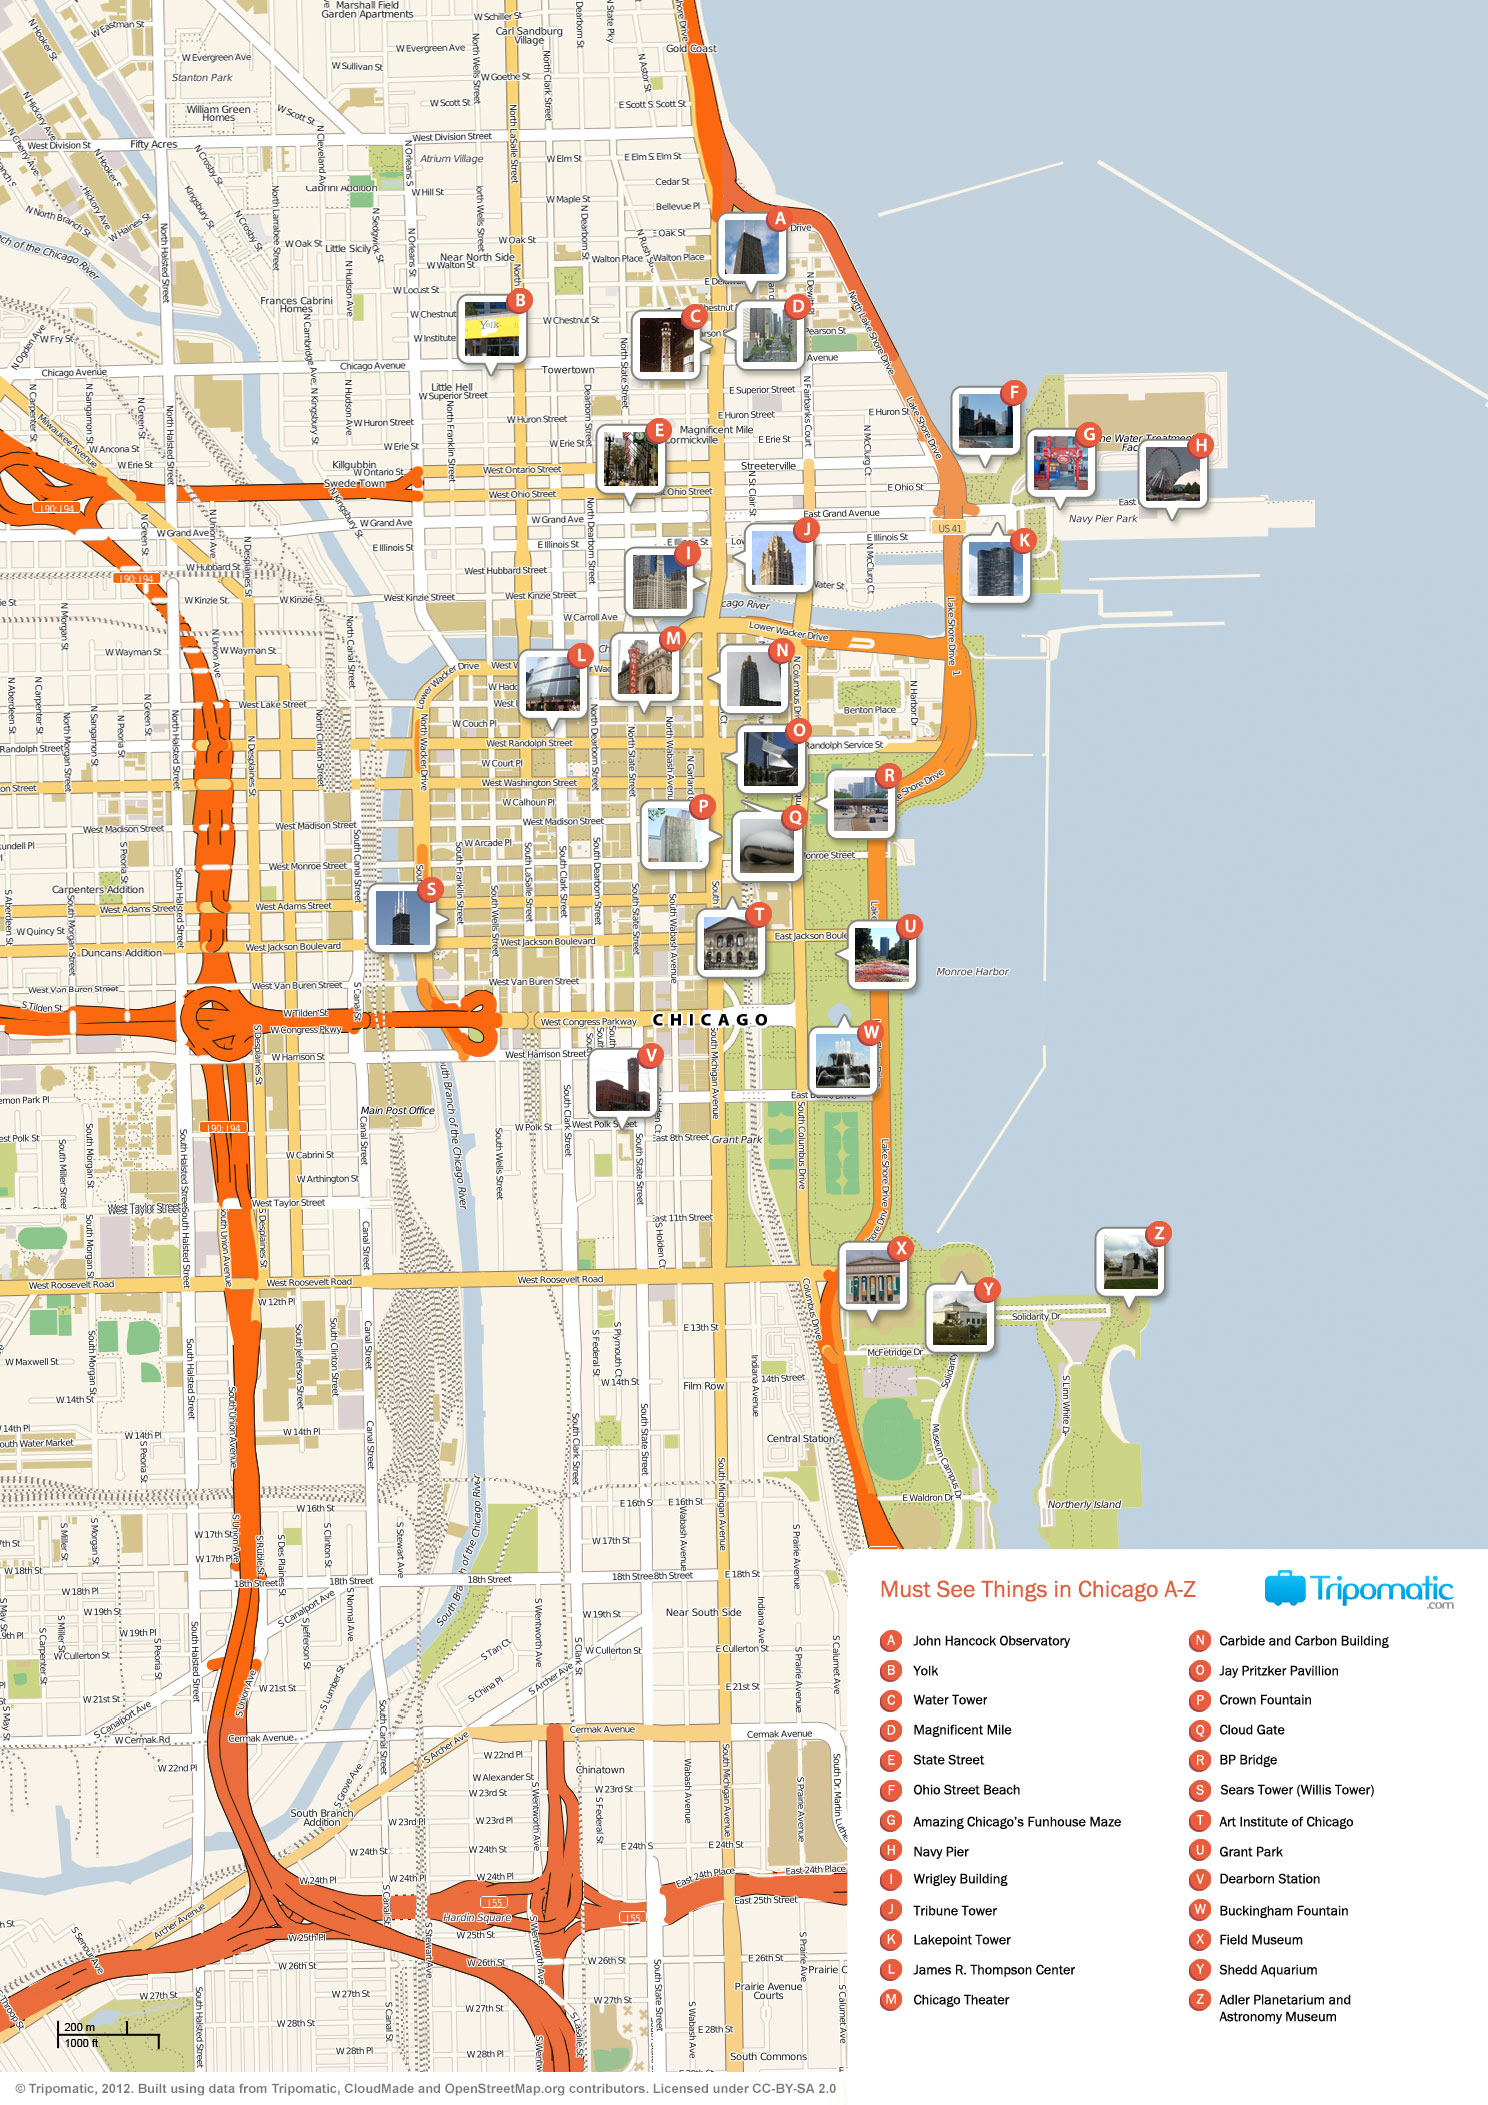 FileChicago printable tourist attractions mapjpg Wikimedia Commons